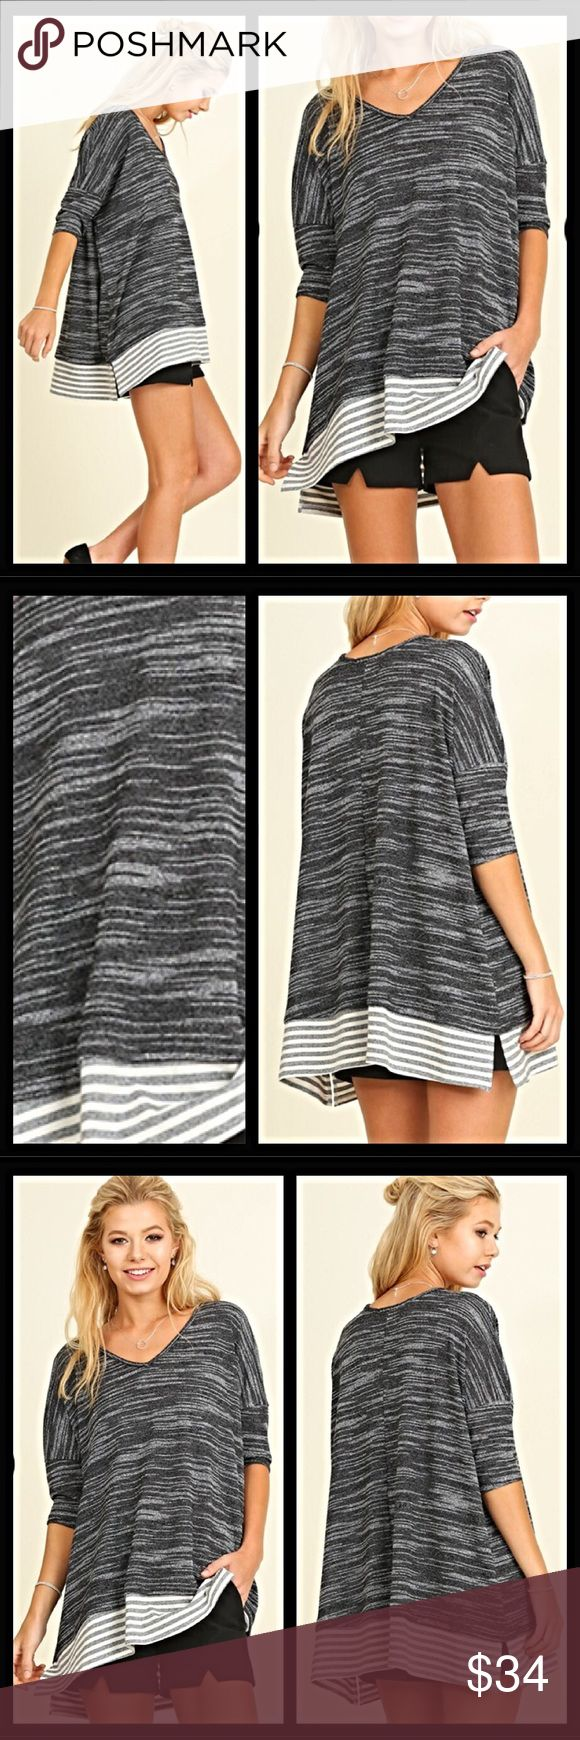 """Marled Slouchy Lightweight Sweater Tunic SML Super sassy & super relaxed/slouchy little marled lightweight sweater tunic in black & white.   Features: • Marled soft cotton blend fabric • Pullover V-neck Slouchy Style • 3/4 Sleeves  • Split hem with contrasting stripes  Small 2/4/6 Bust 48"""" Length 27"""" Medium 8/10 Bust 49"""" Length 28"""" Large 12/14 Bust 50""""'Length 29"""" Tops"""